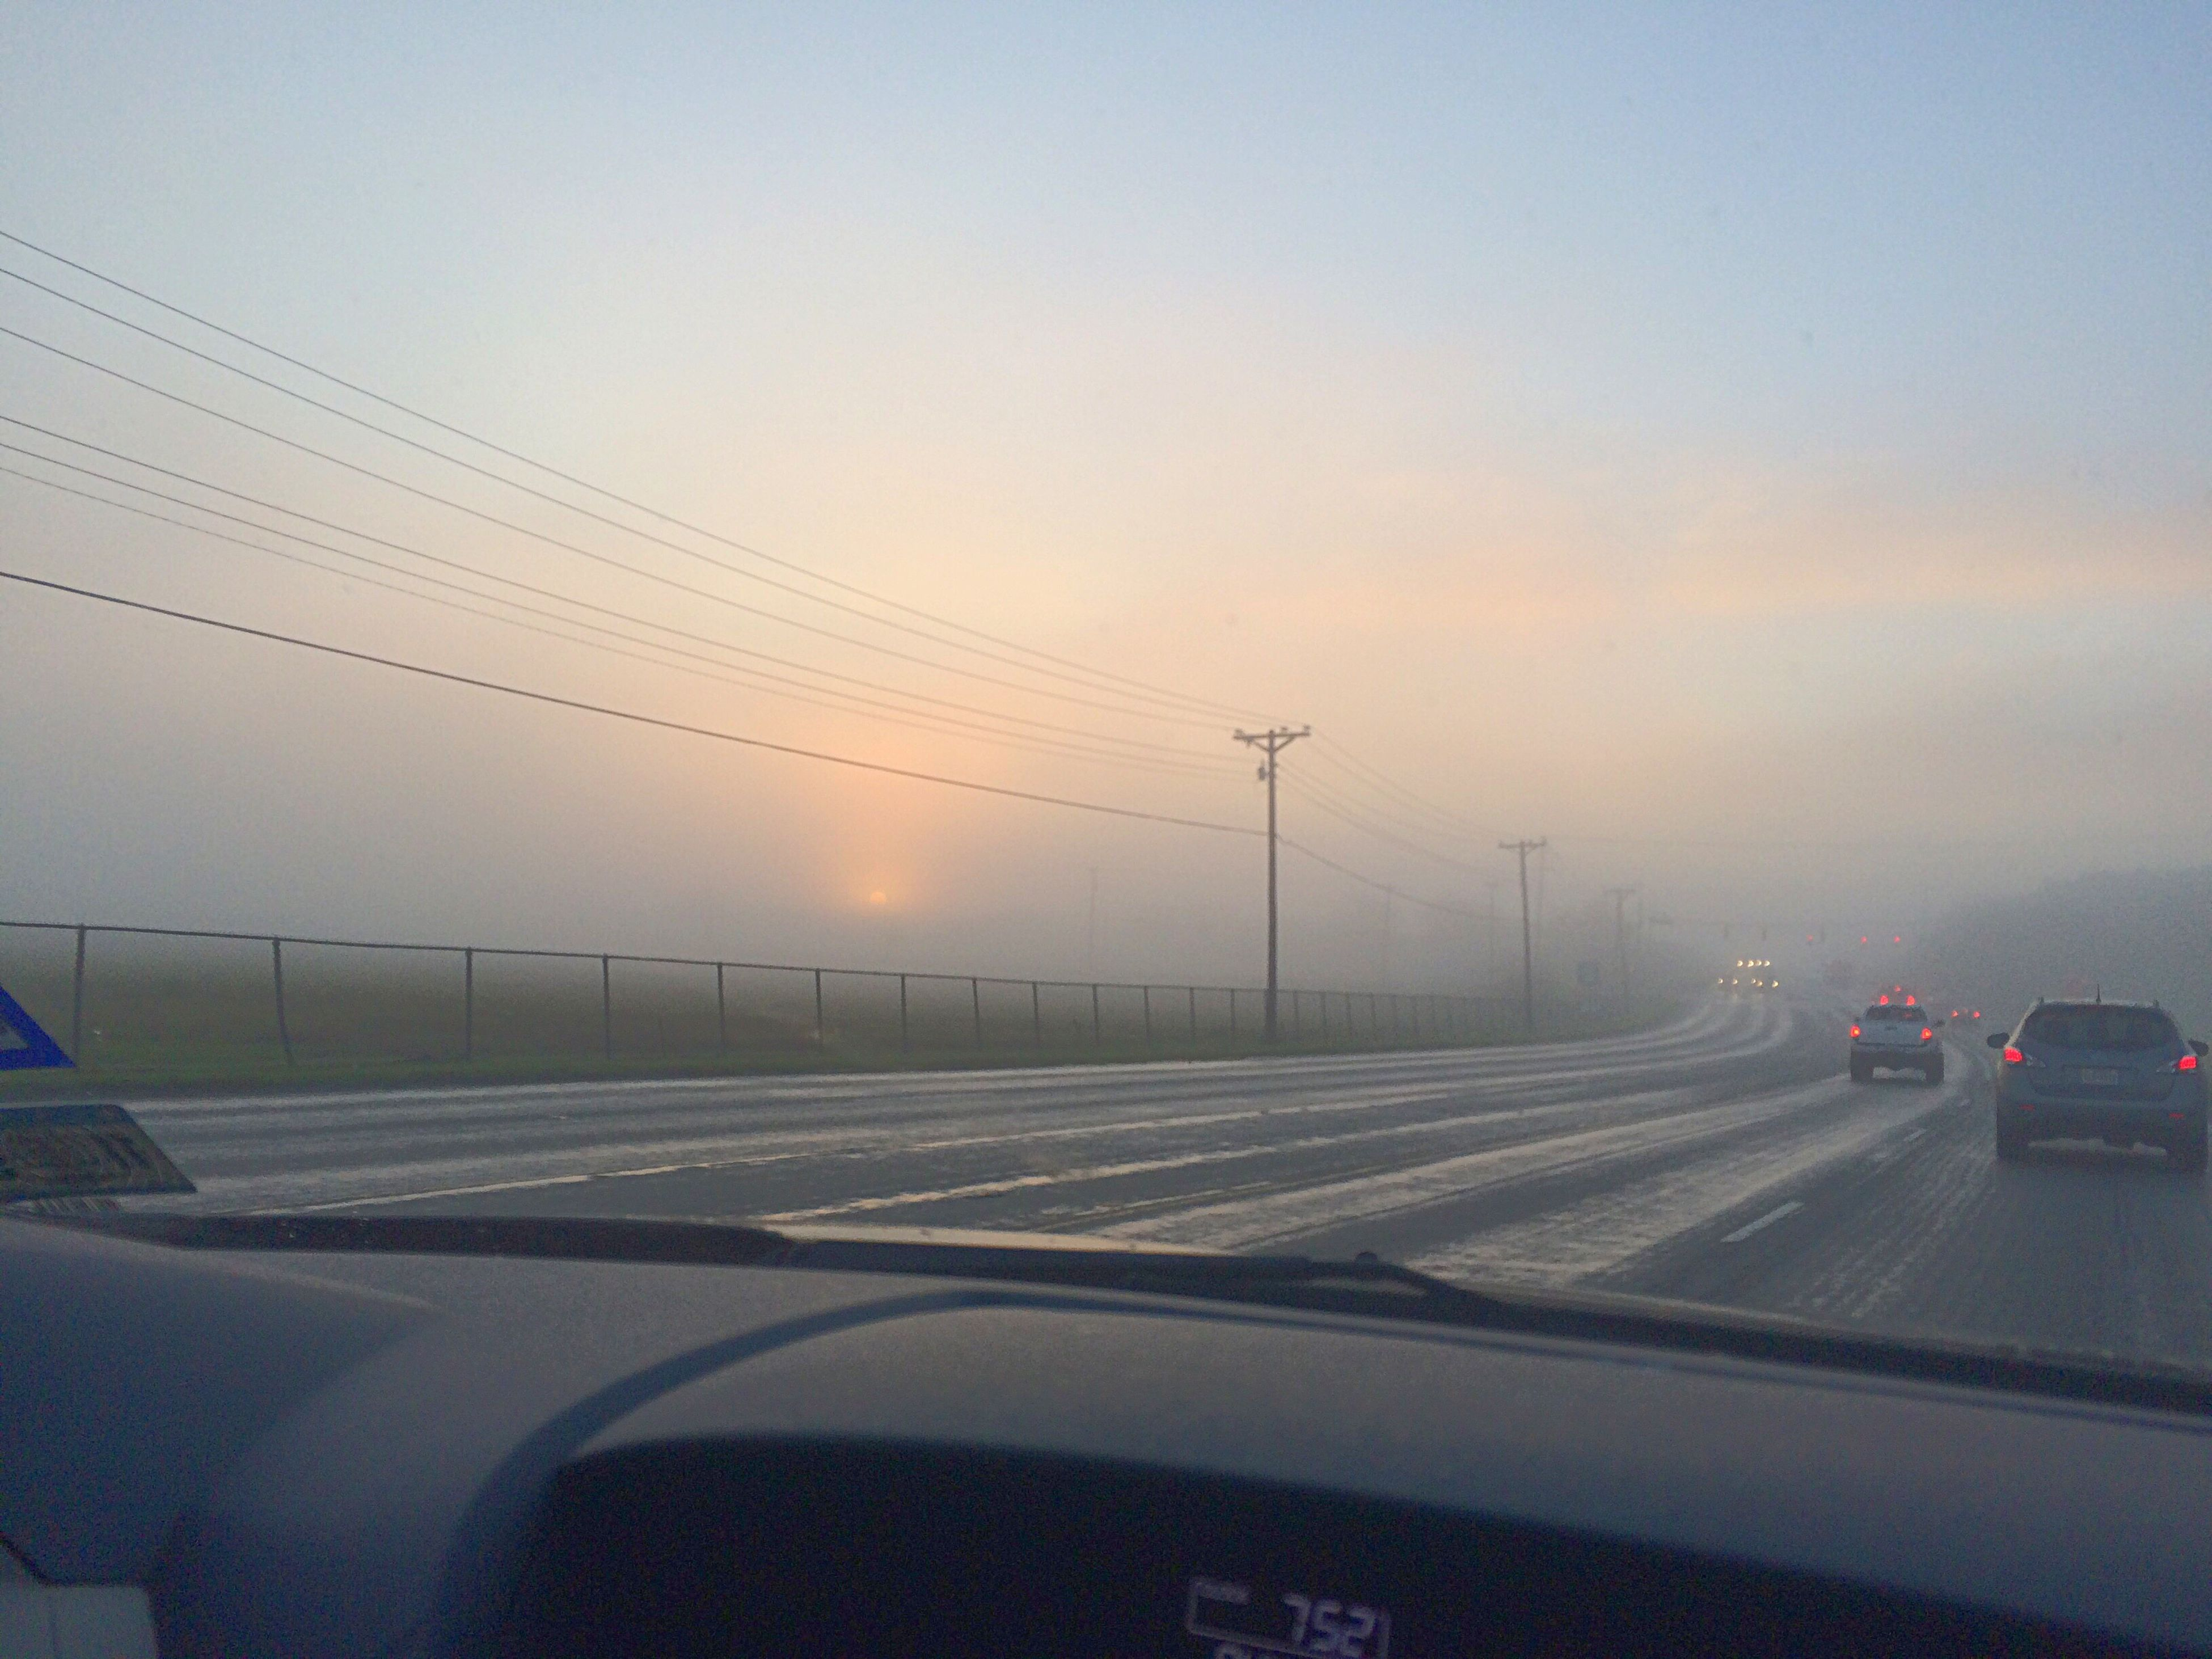 car, transportation, land vehicle, mode of transport, road, no people, car point of view, windshield, sunset, car interior, cold temperature, sky, winter, nature, outdoors, day